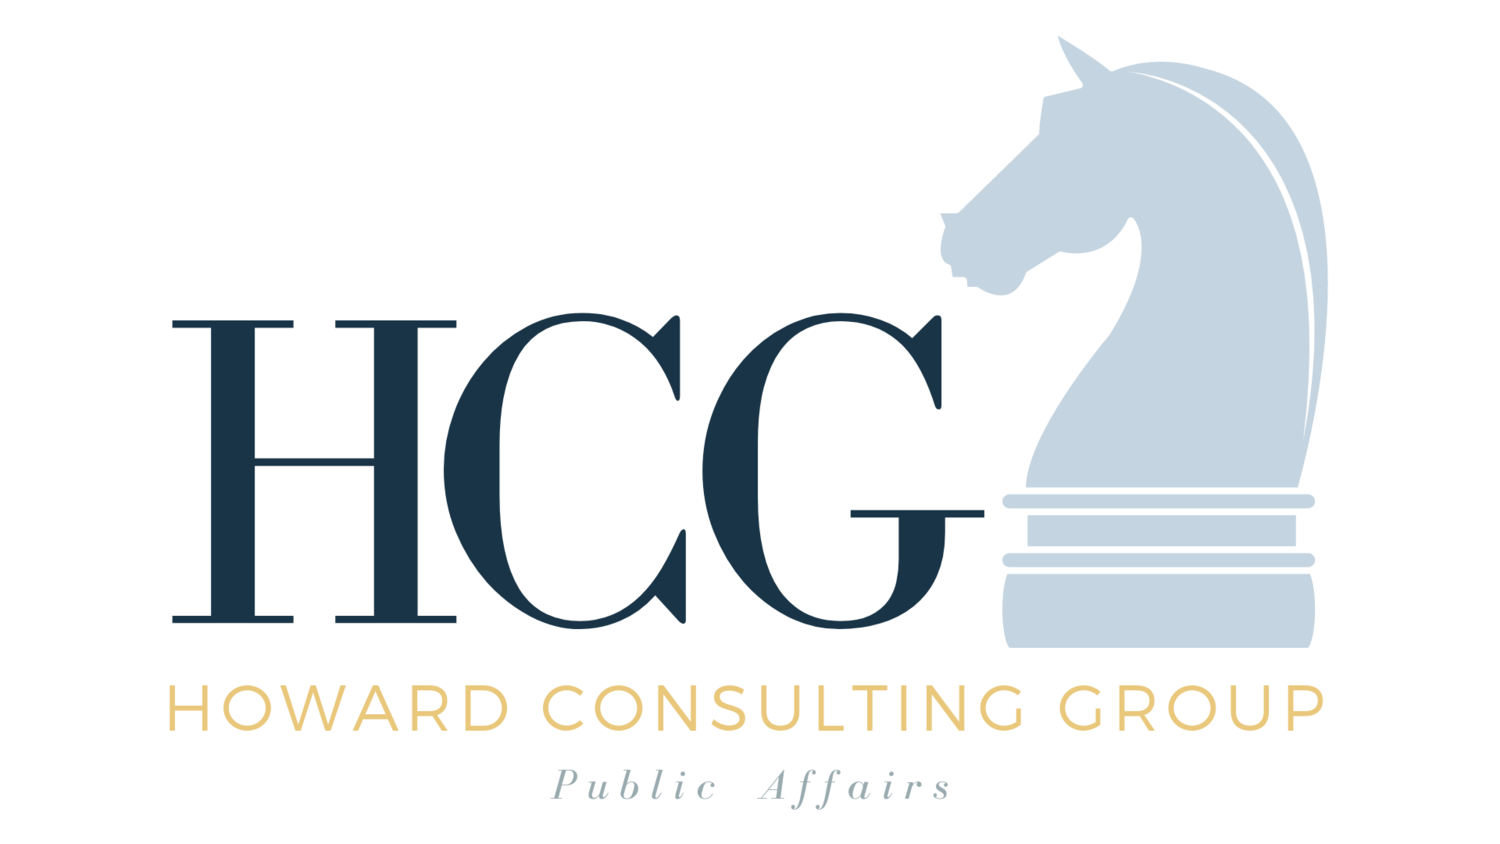 Howard Consulting Group